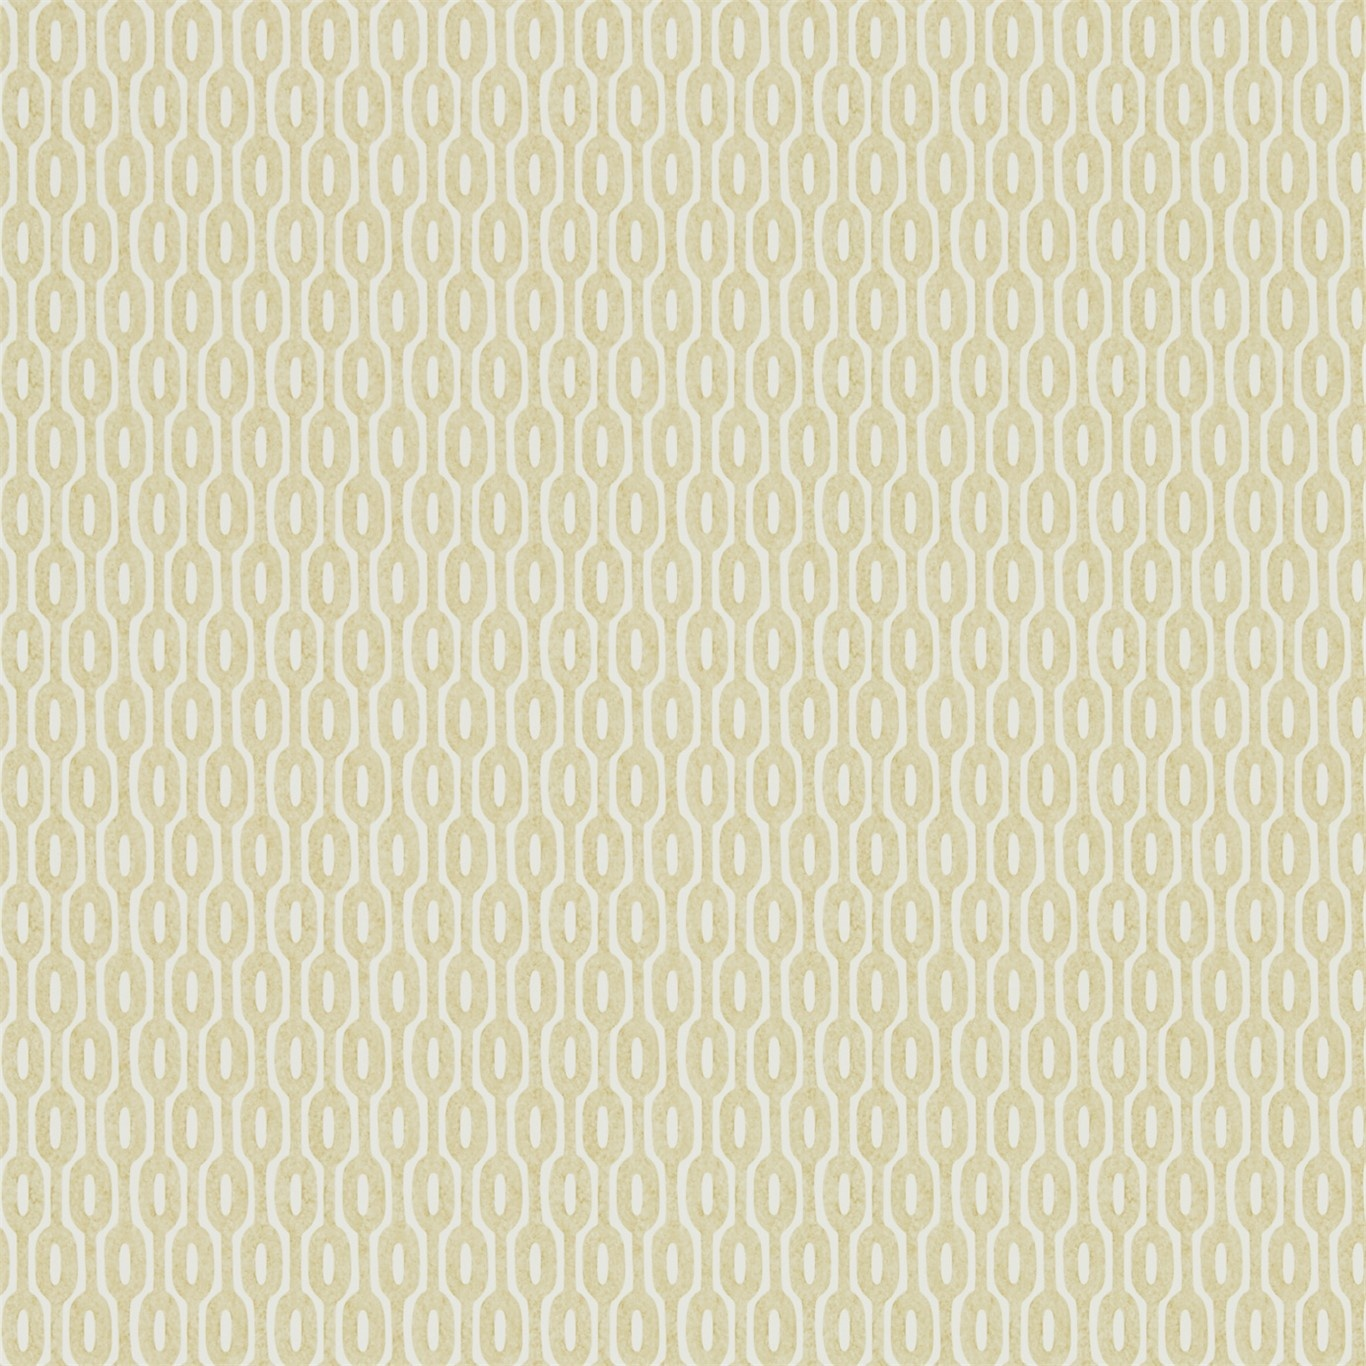 Sanderson Home Hemp Dijon Wallpaper 216367